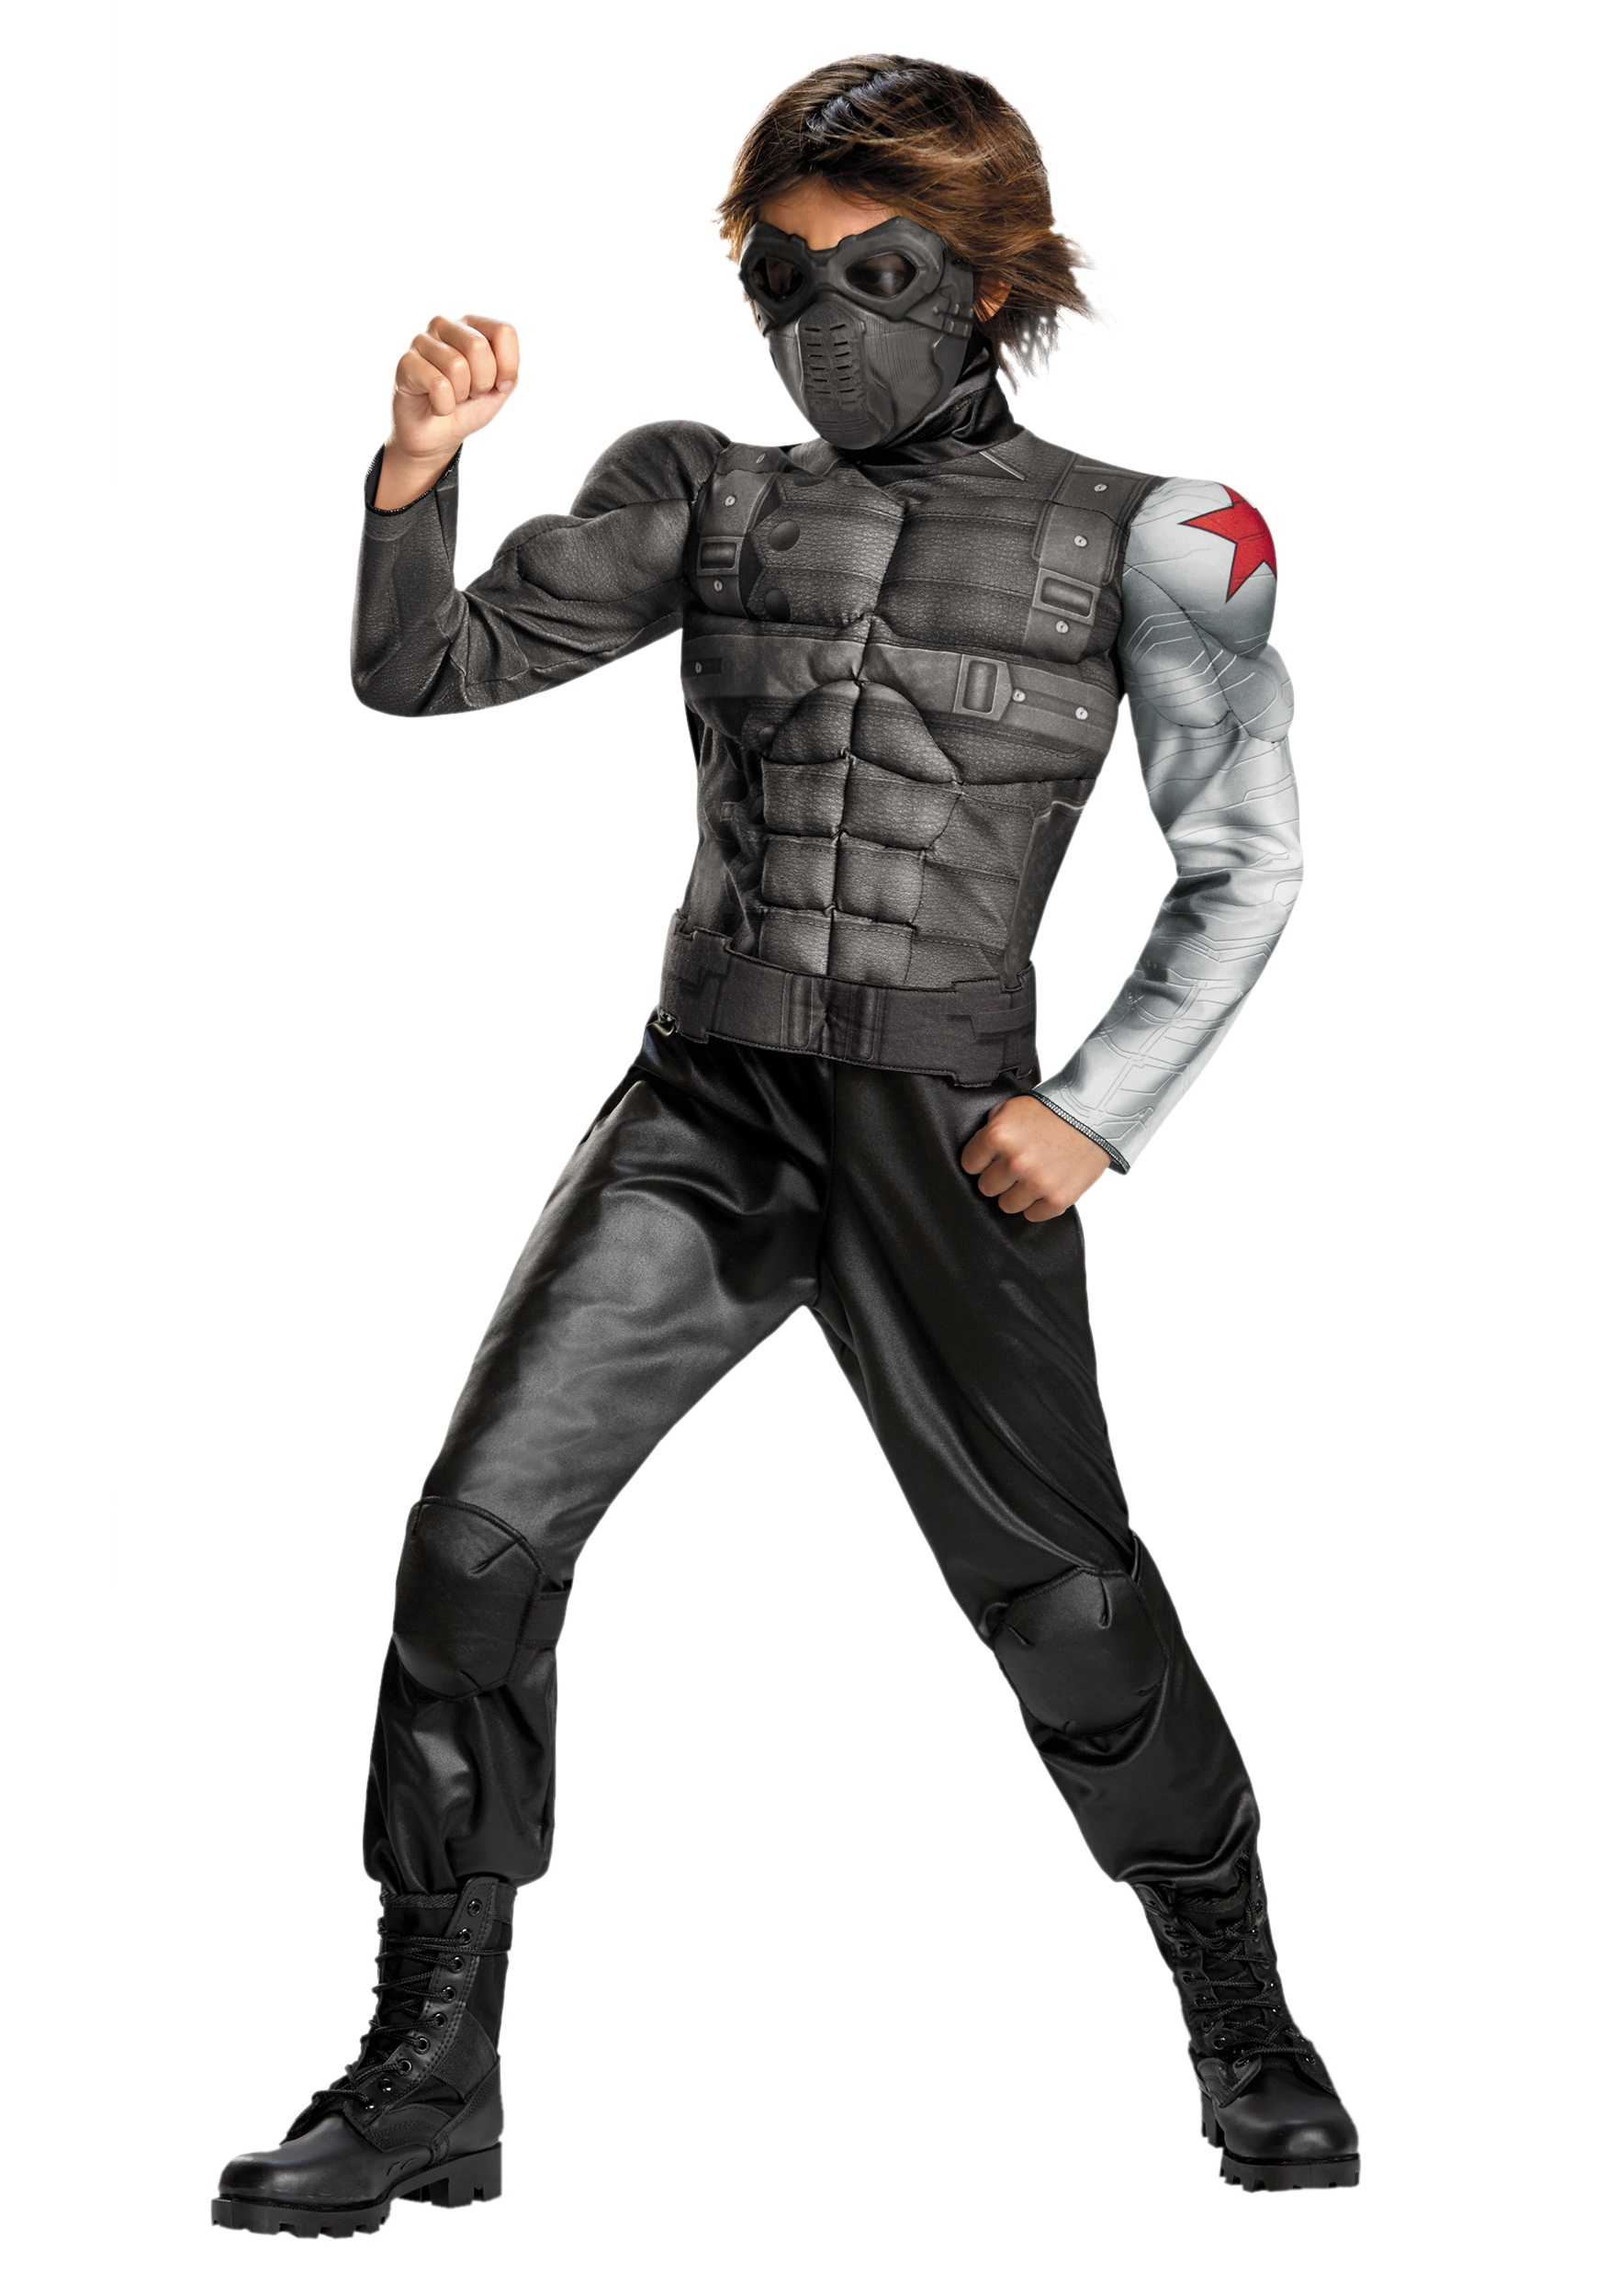 Kids Winter Soldier Classic Muscle Costume  sc 1 st  Halloween Costumes & Kids Winter Soldier Classic Muscle Costume - Halloween Costumes